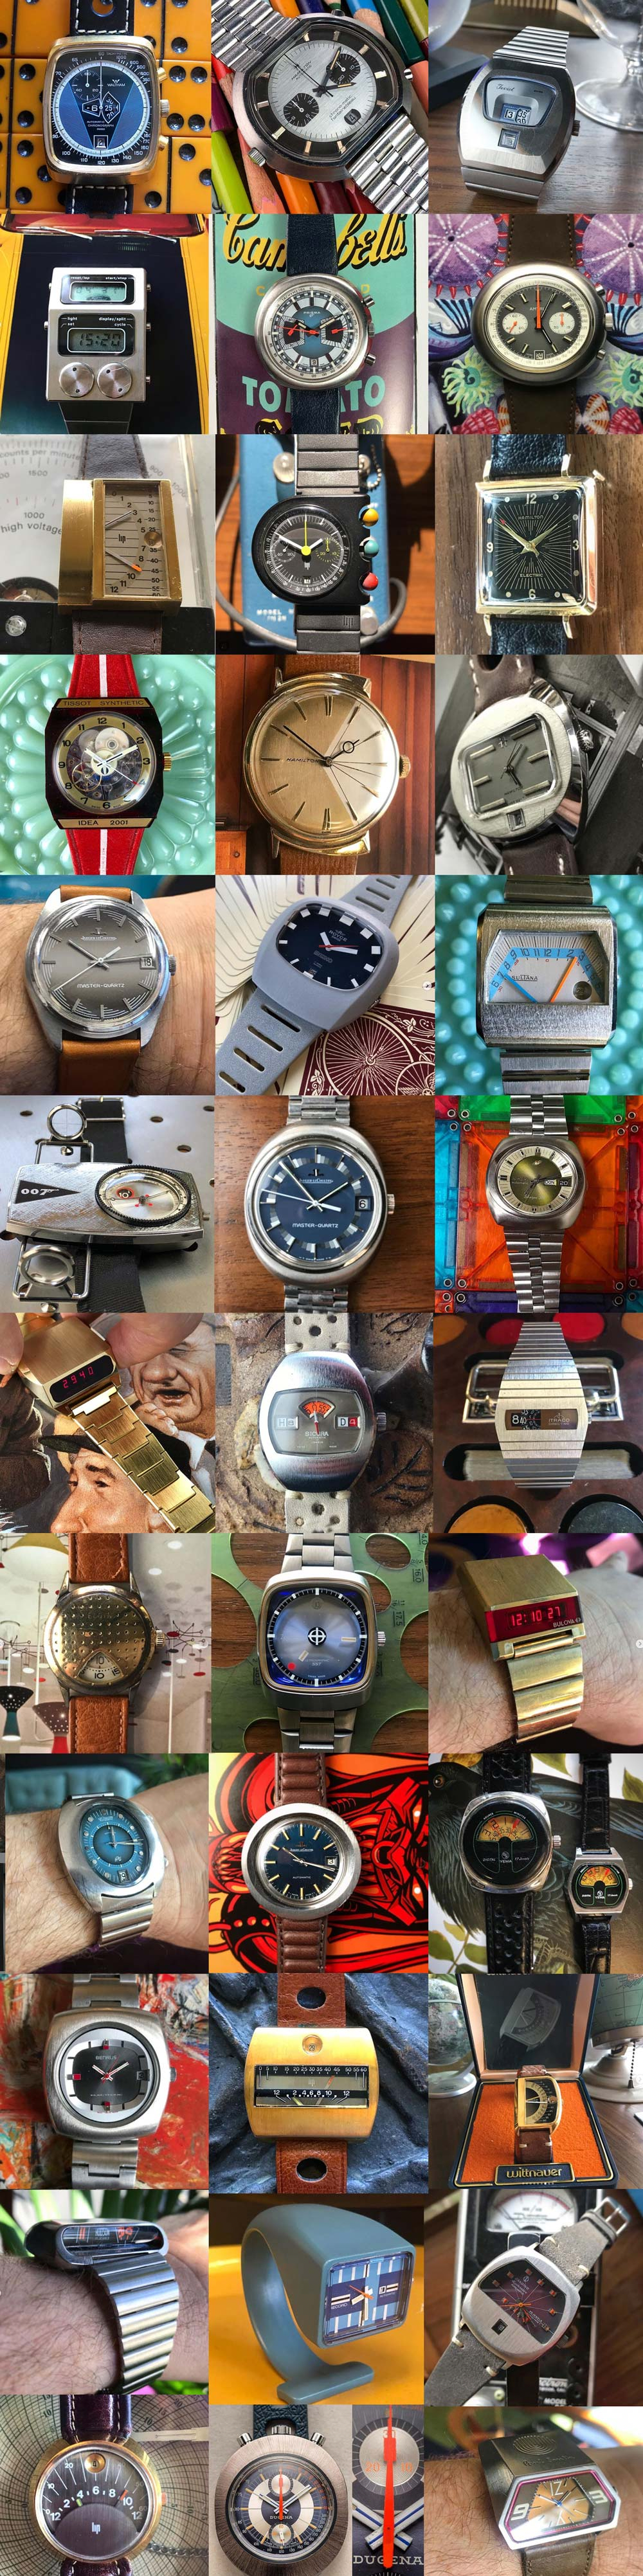 Horolovox formerly Watchismo vintage watch collection